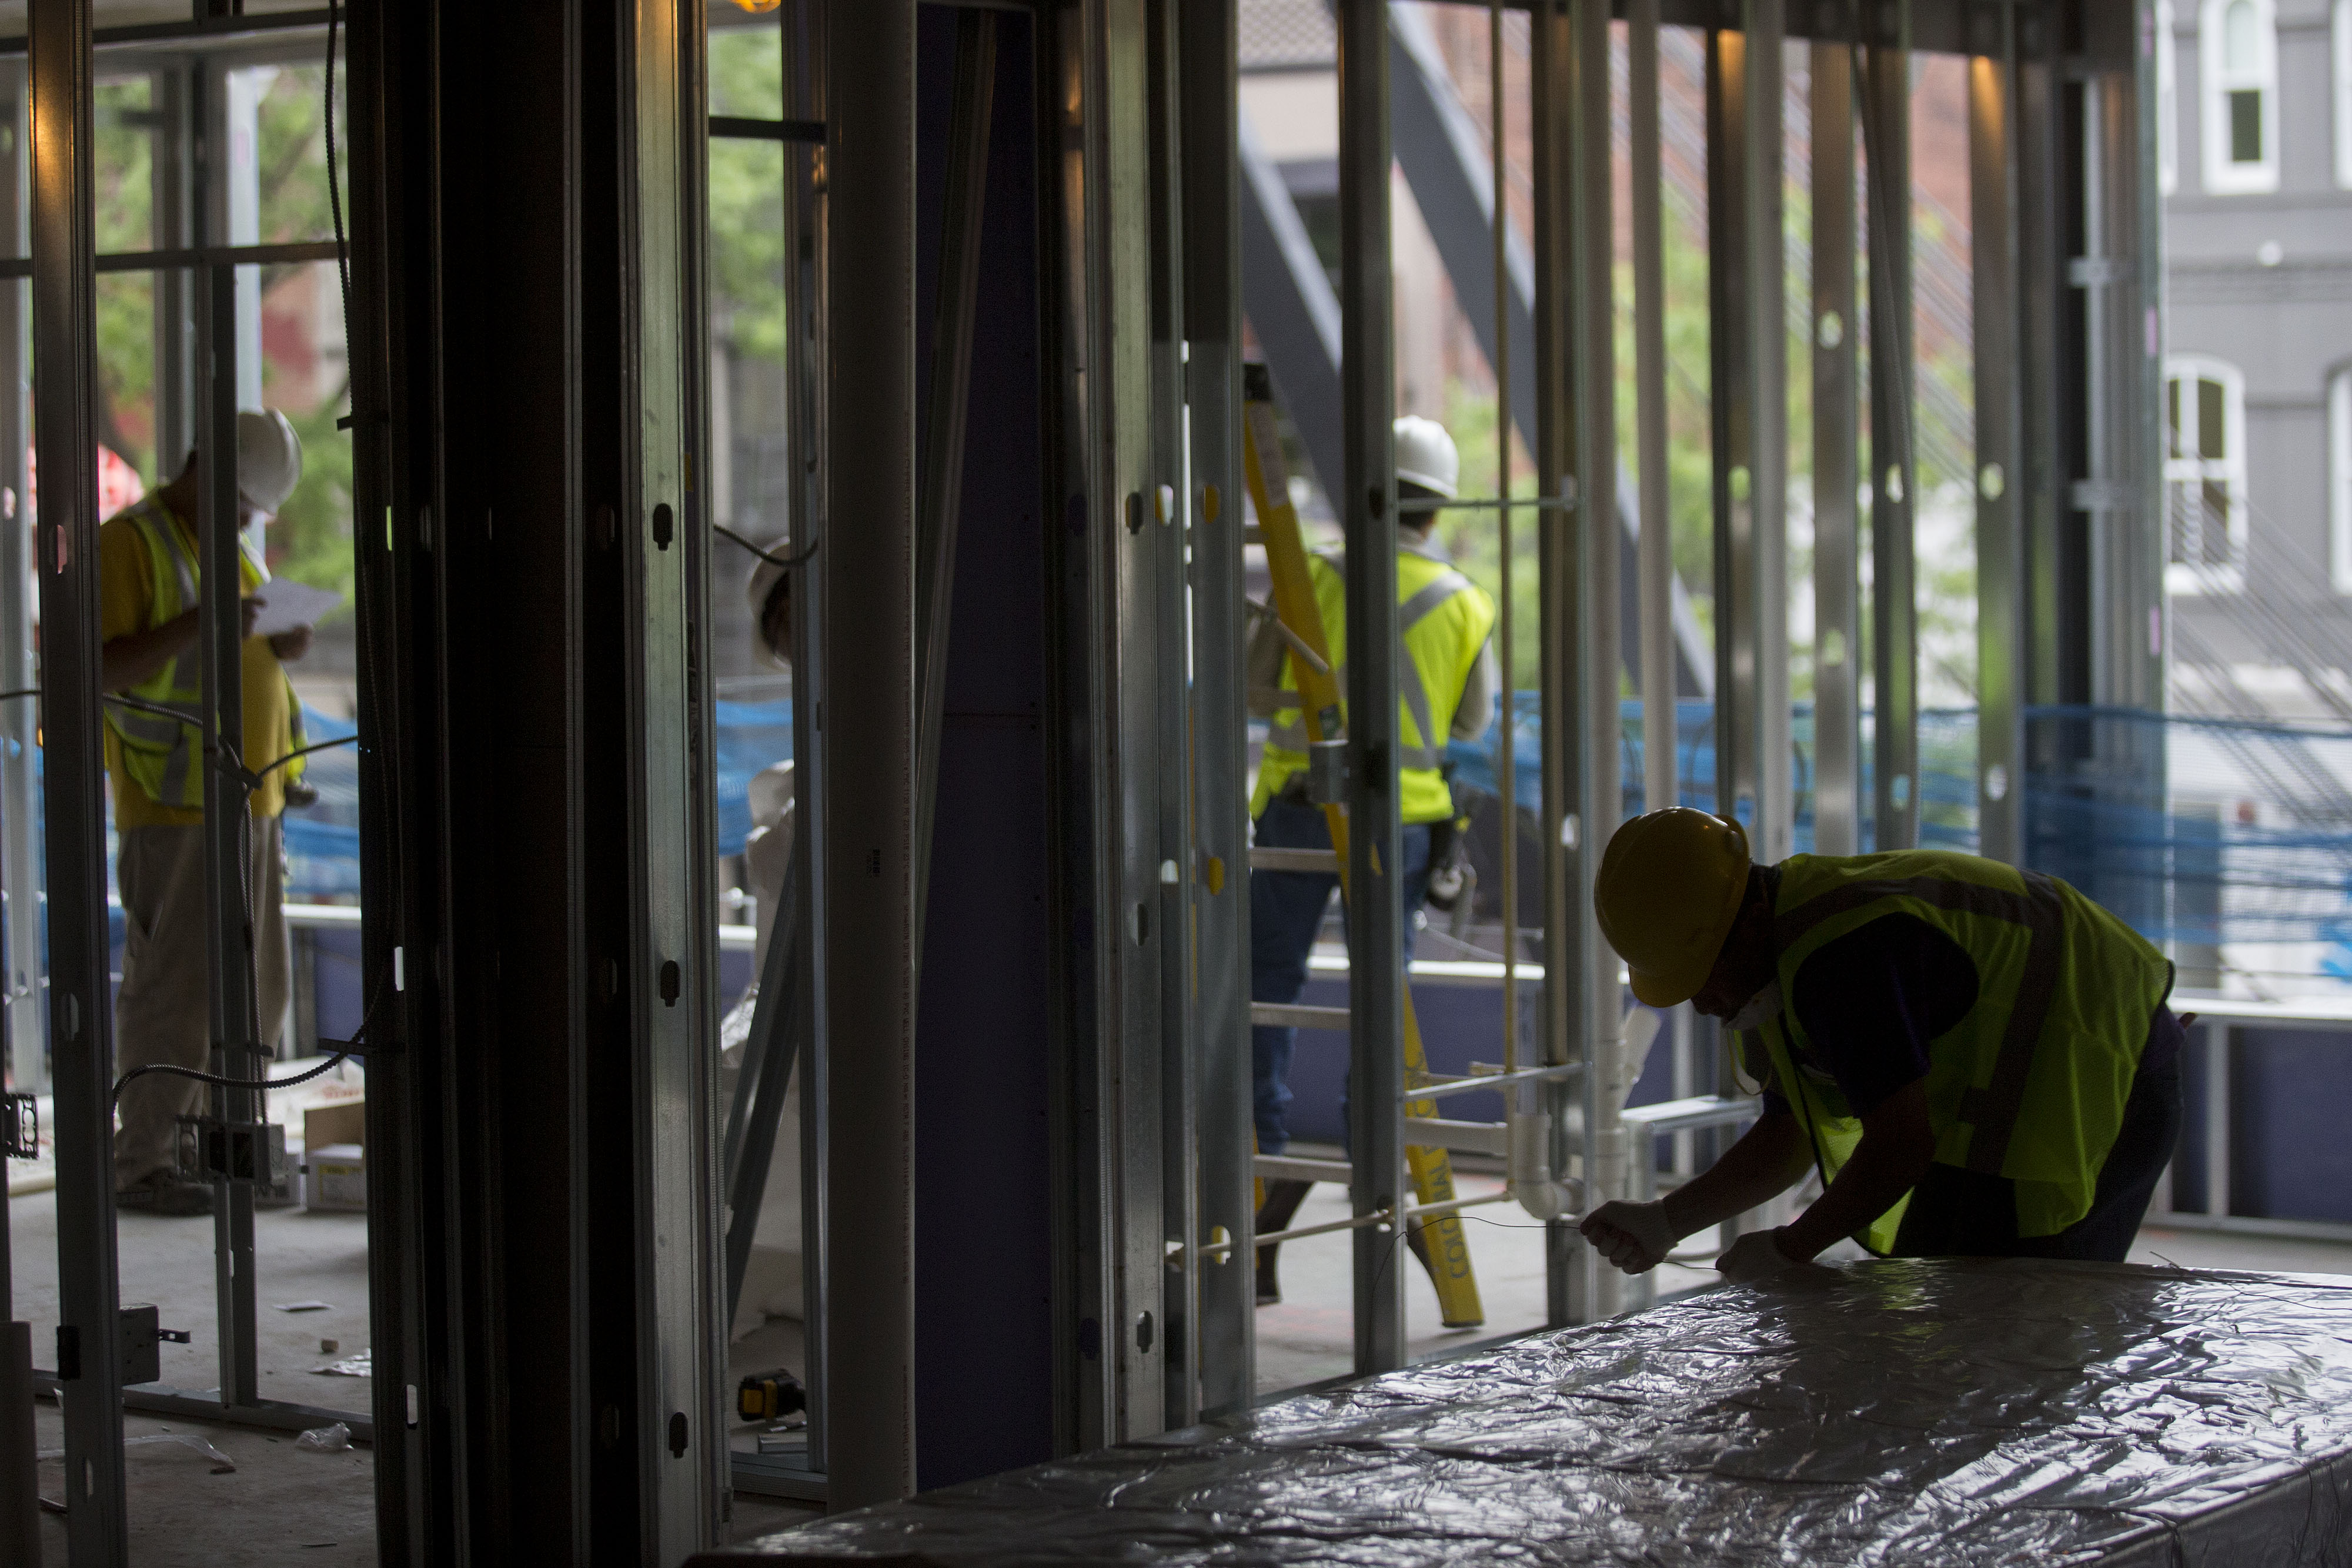 Subcontractors work at the Donohoe Construction Co. Bentley retail and apartment building under construction in Washington on May 14, 2014.